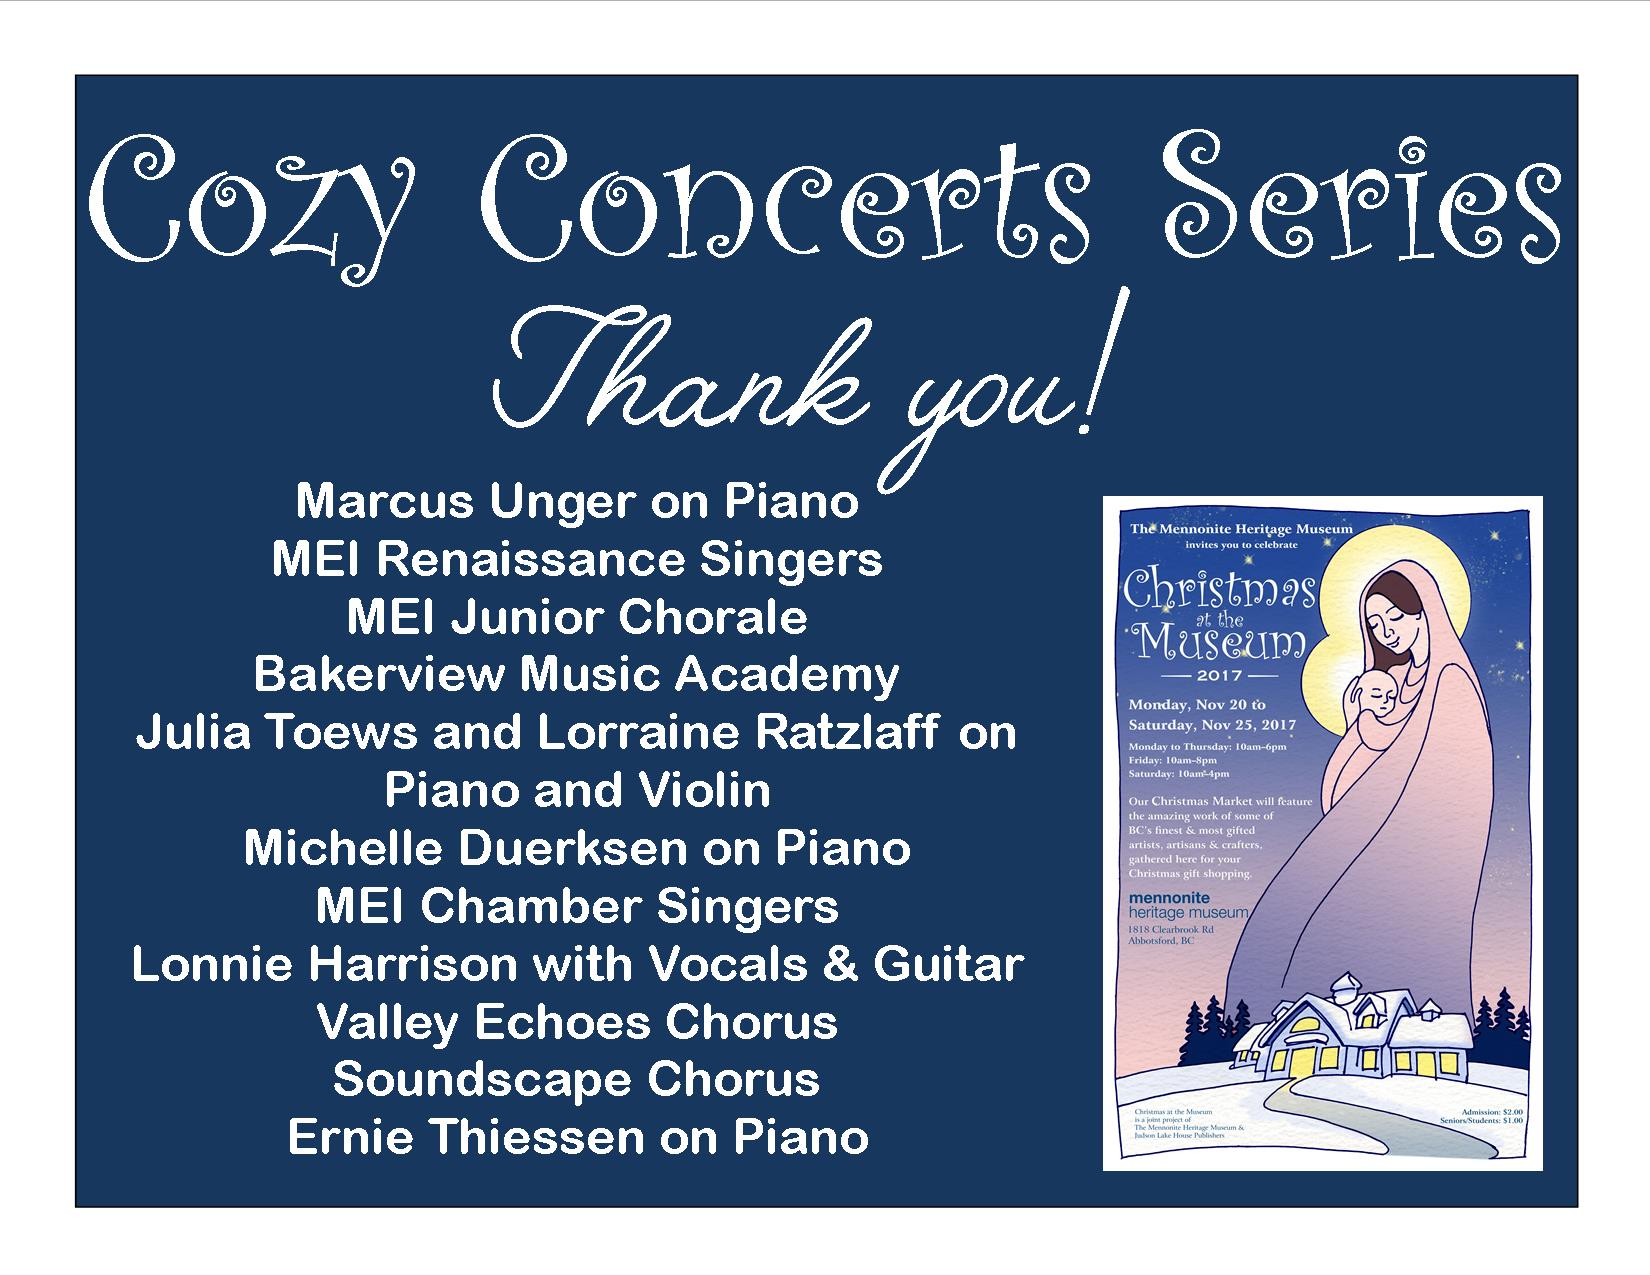 Cozy Concert Series THANK YOU List of Performers